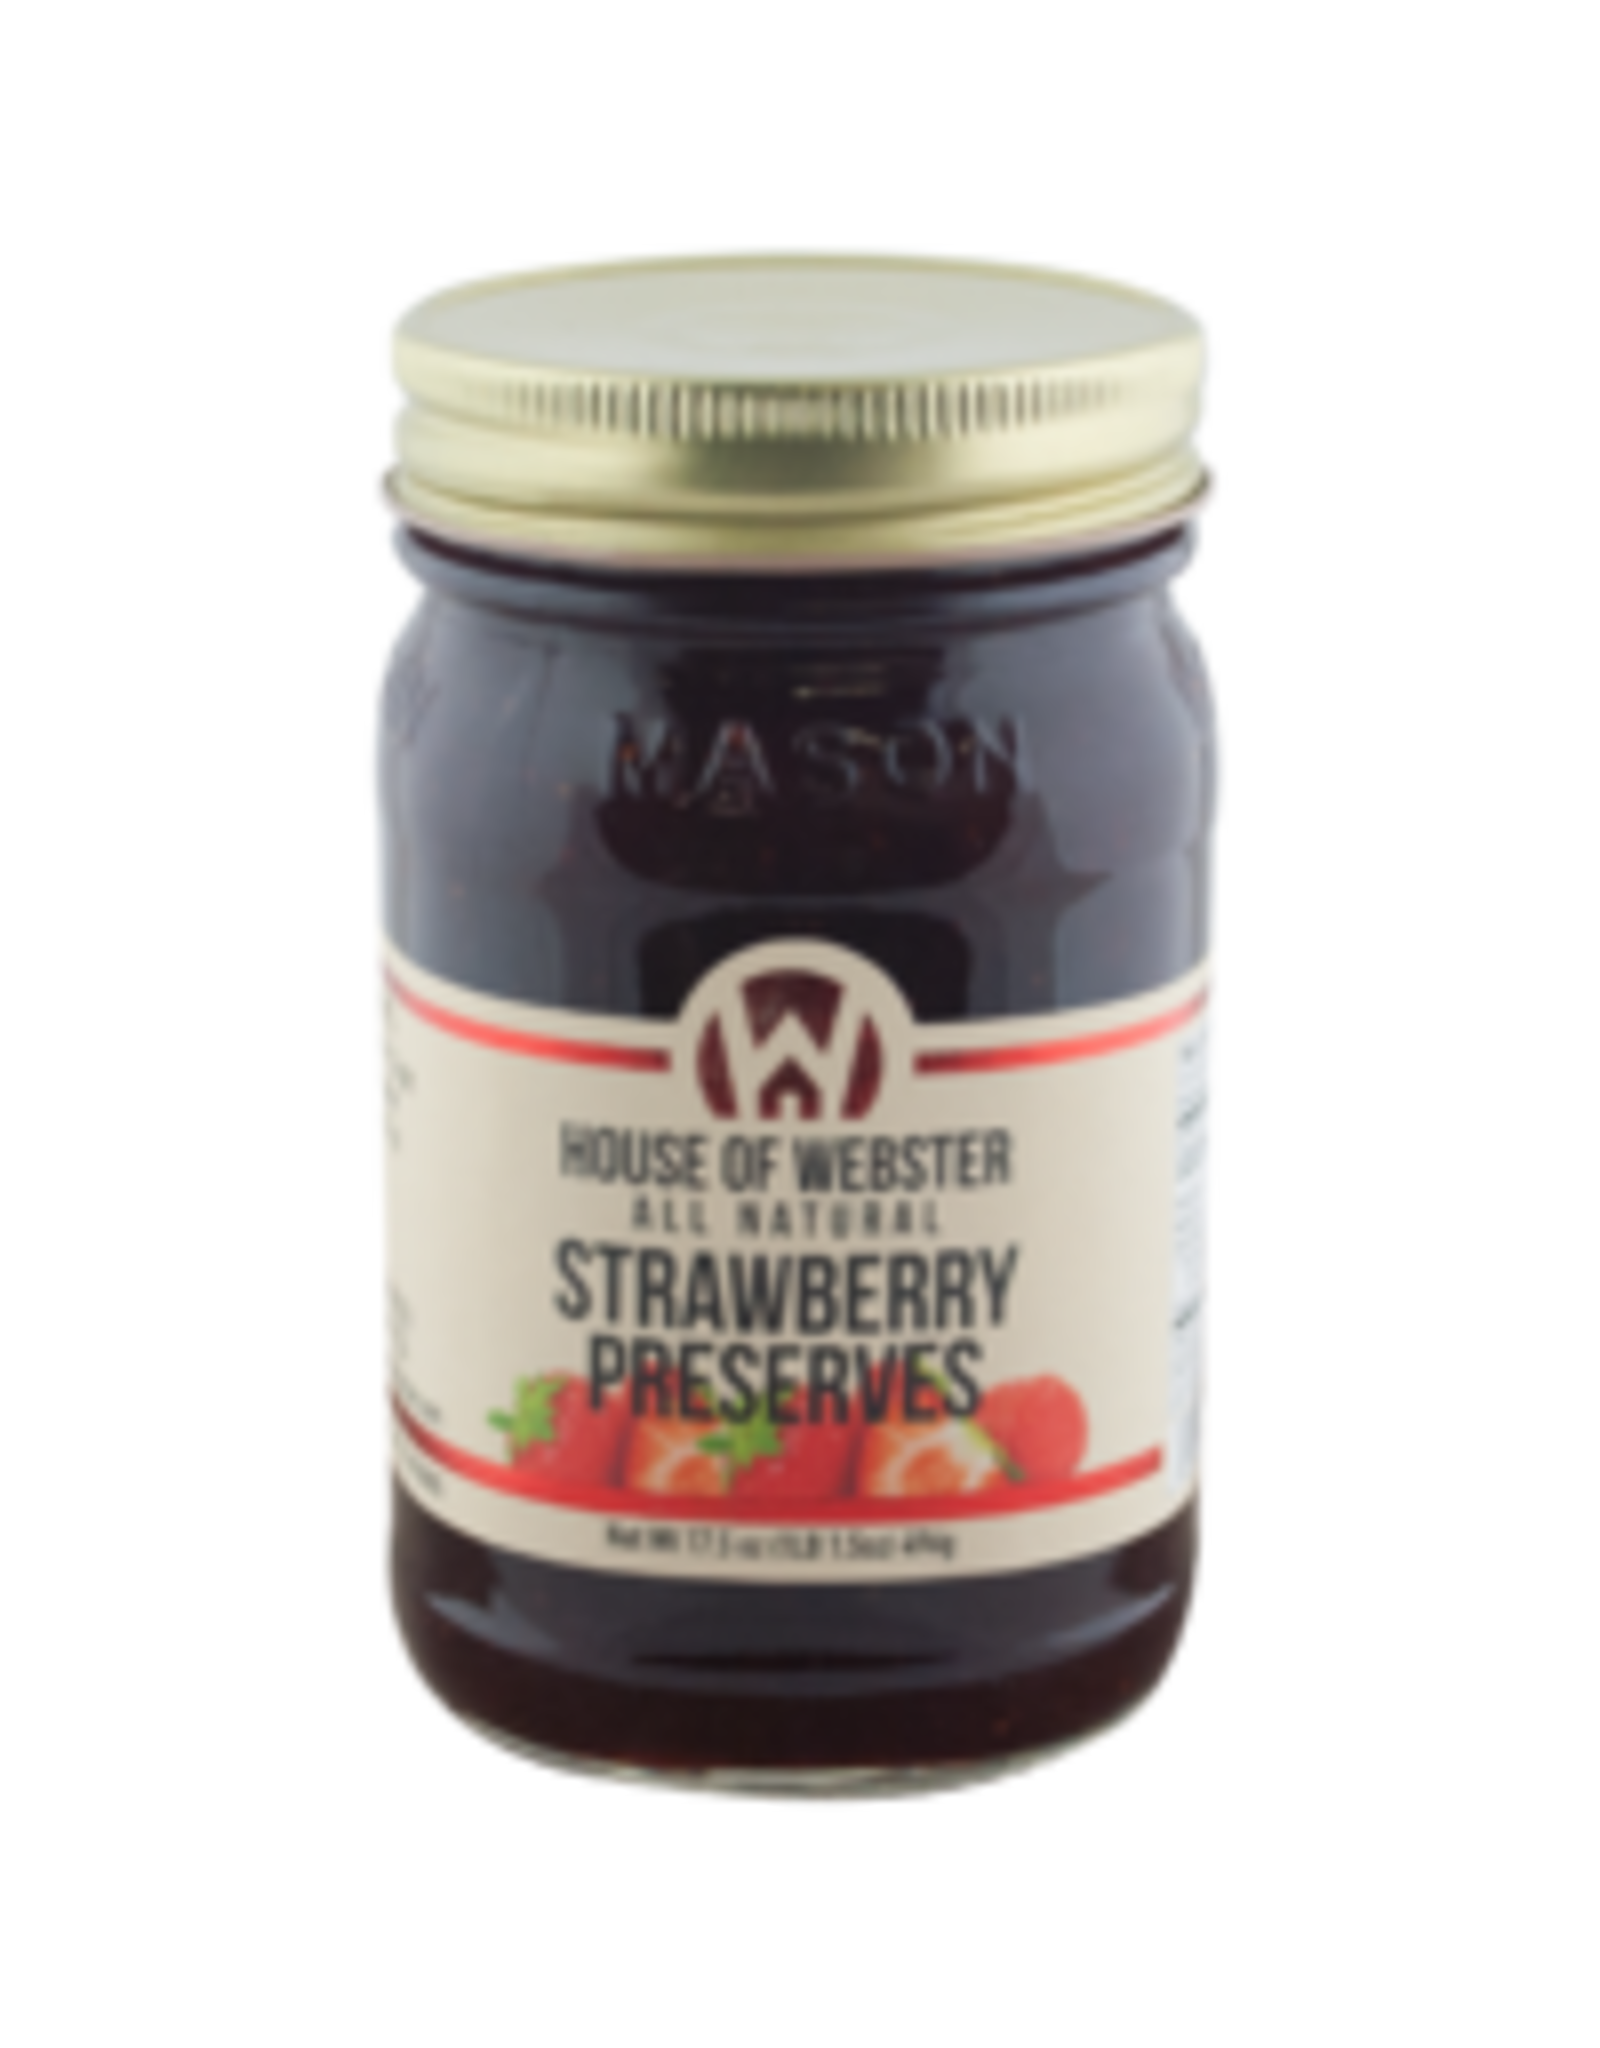 House of Webster Strawberry Preserves, 17.5 oz.